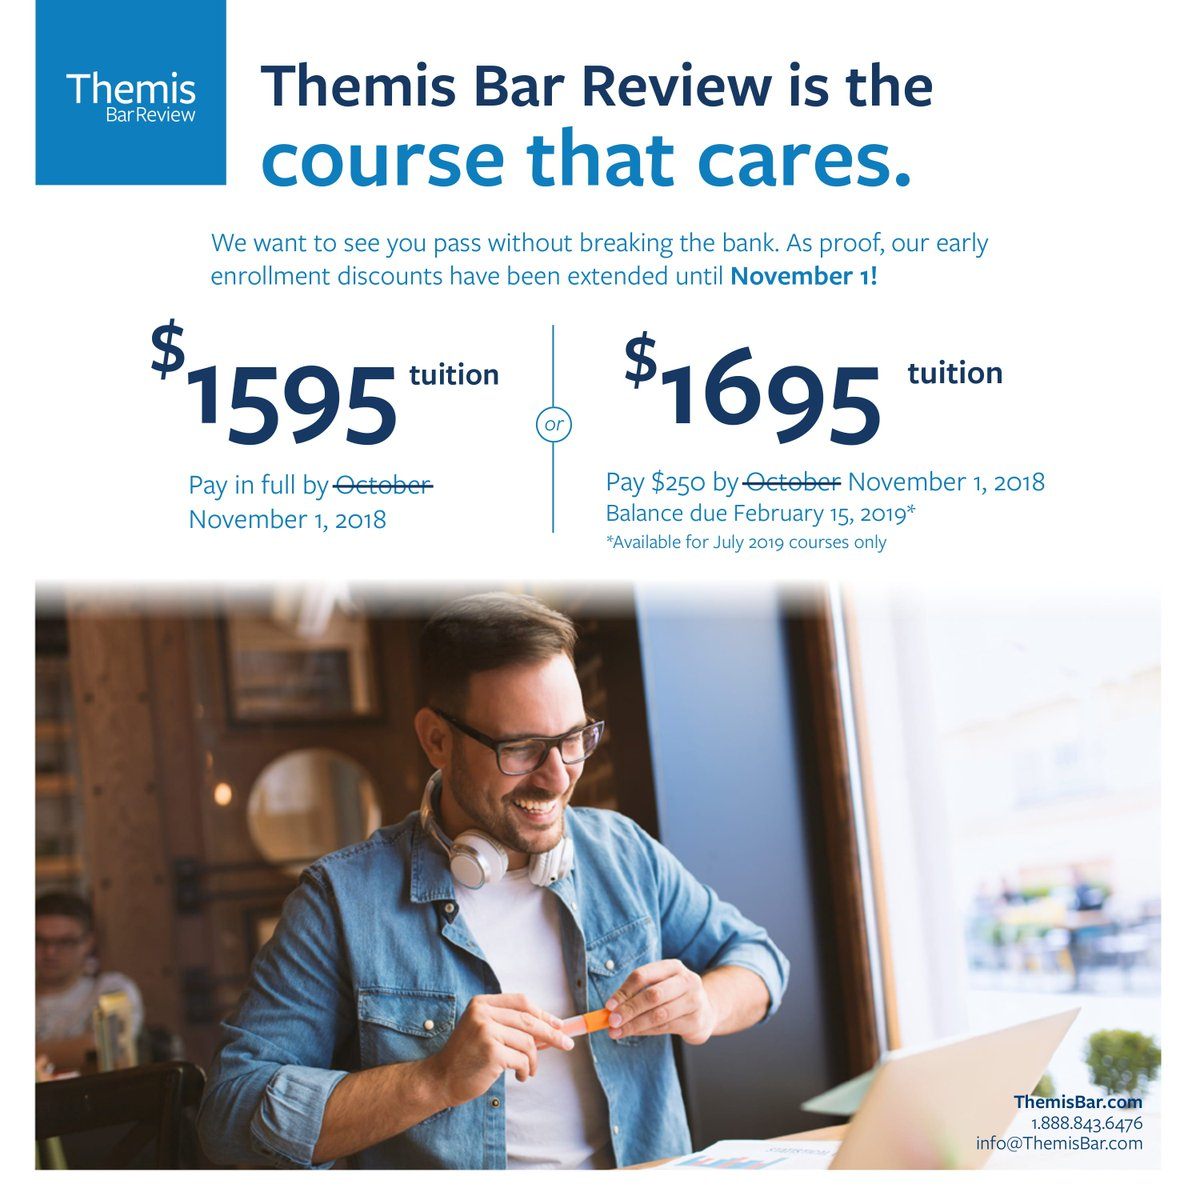 Themis Bar Review on Twitter: